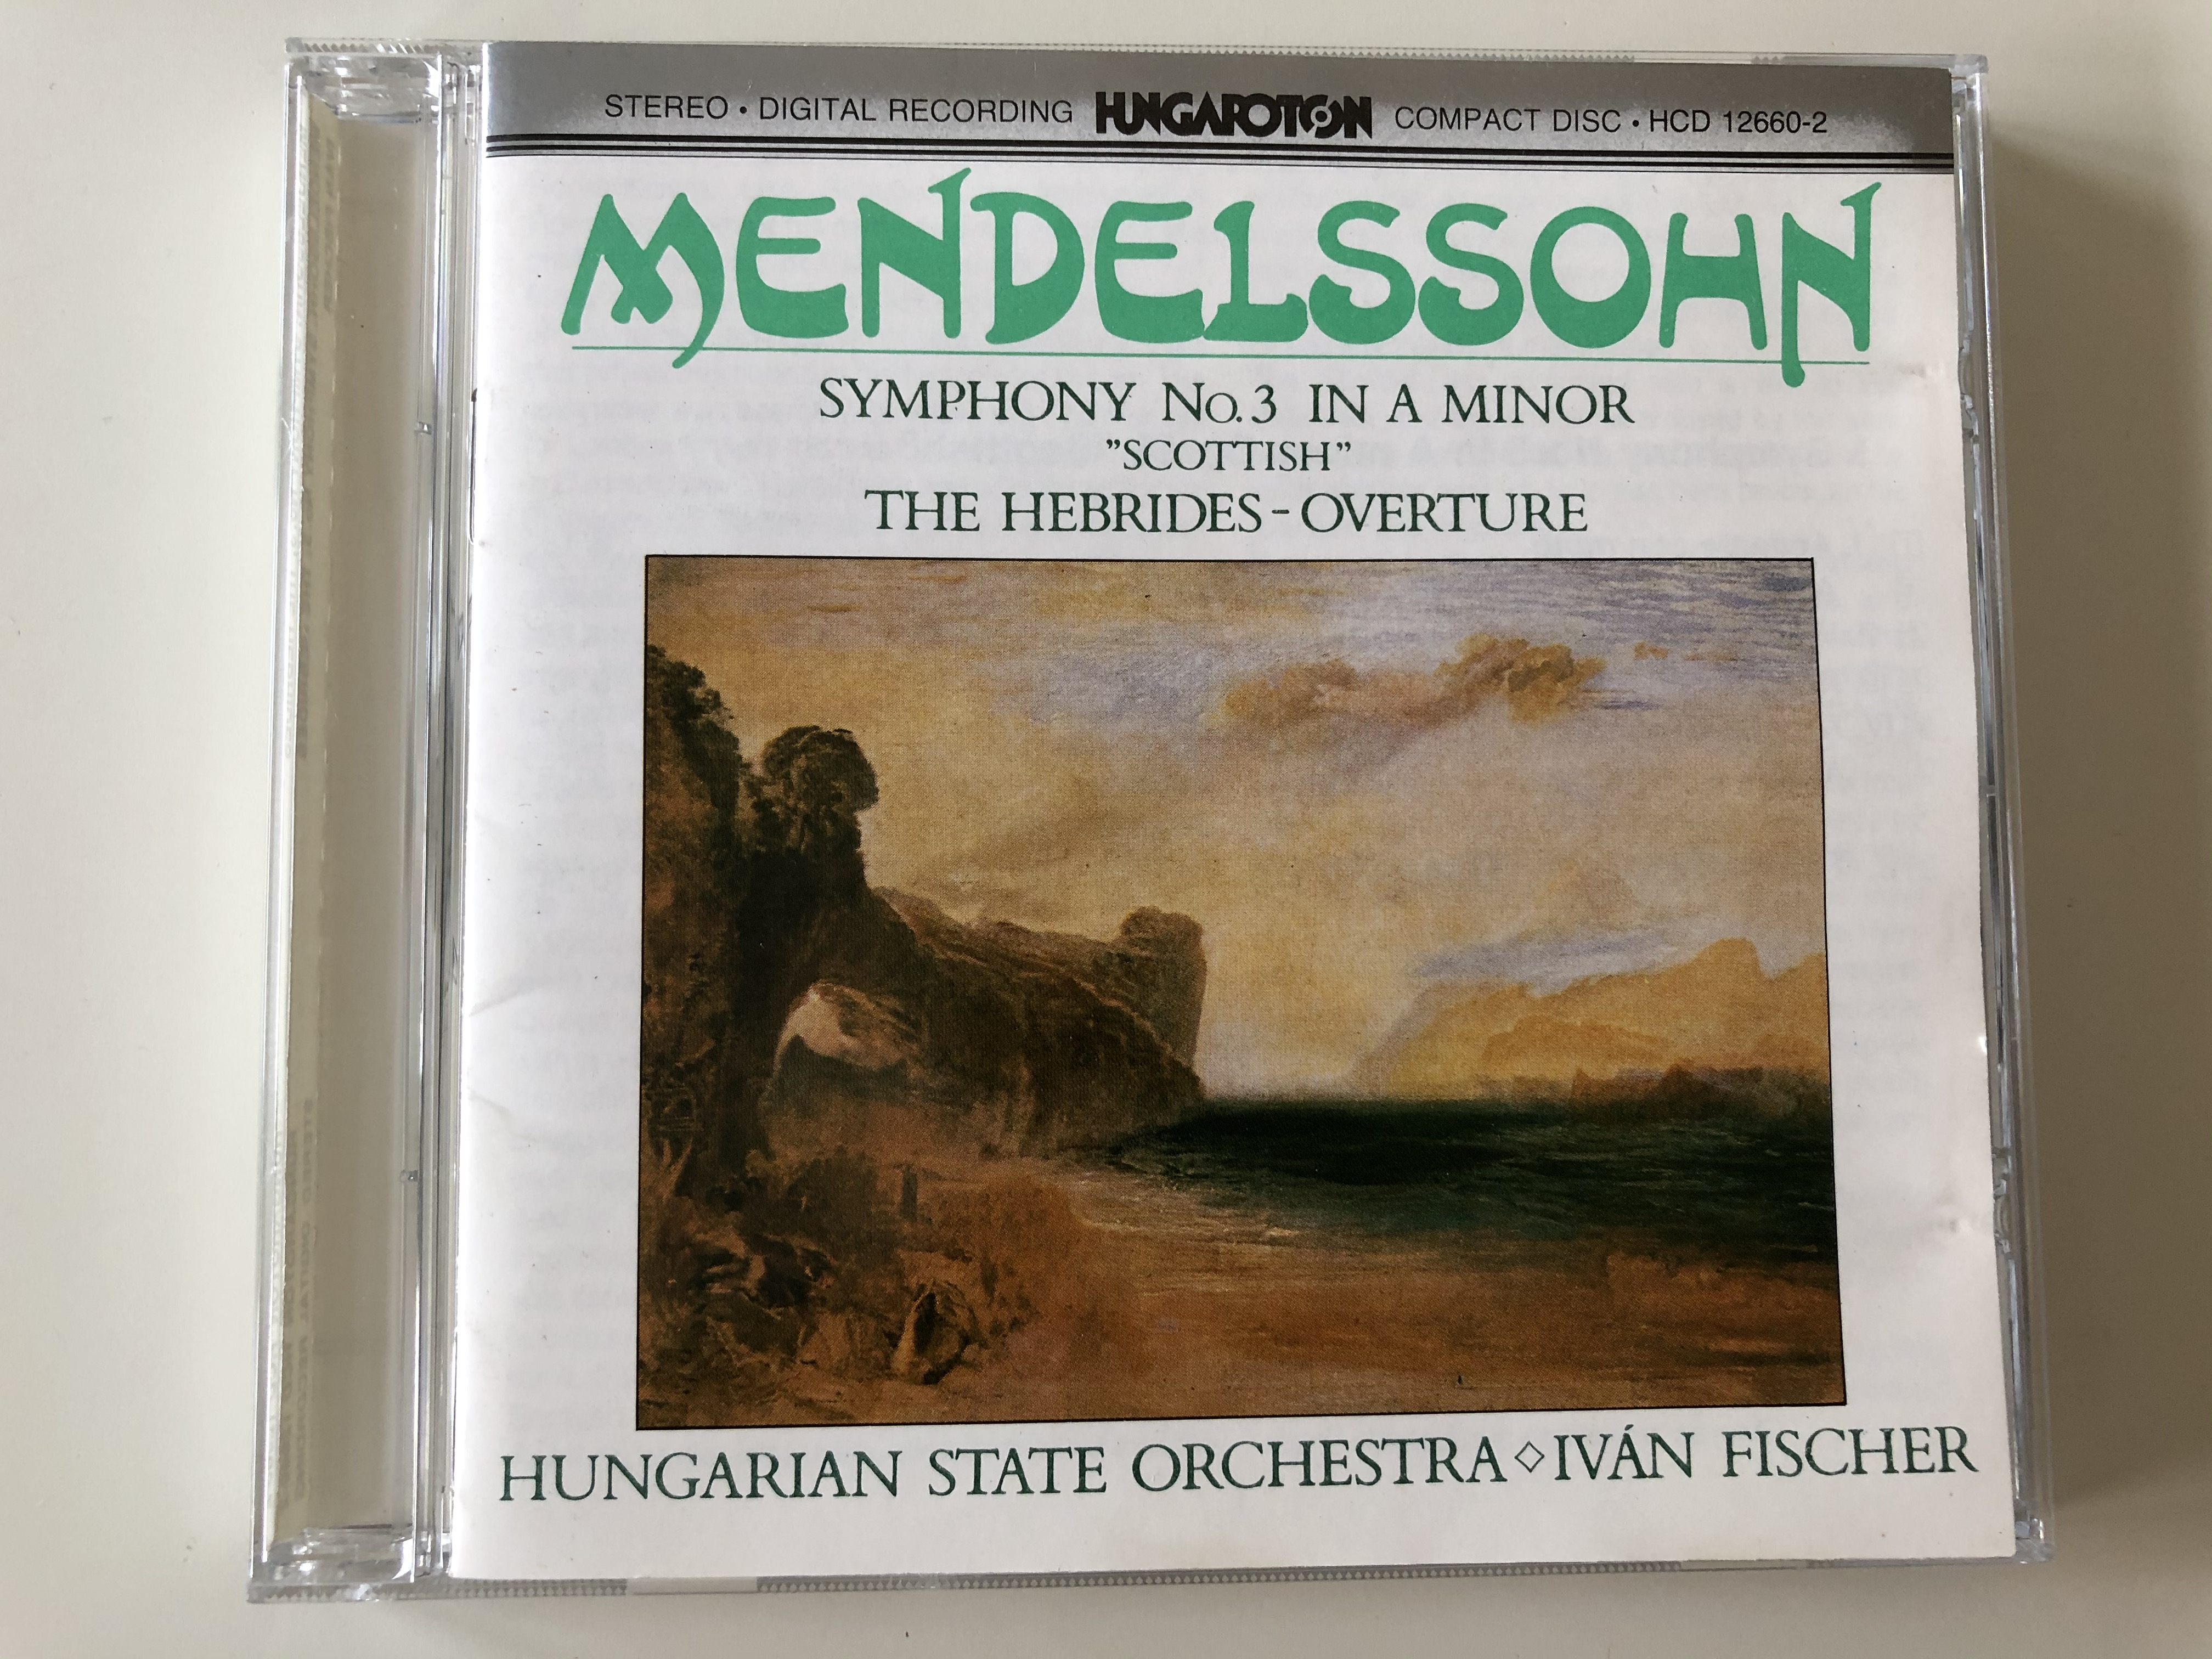 mendelssohn-symphony-no.-3-in-a-minor-scottish-the-hebrides-overture-hungarian-state-orchestra-iv-n-fischer-hungaroton-audio-cd-1985-stereo-hcd-12660-2-1-.jpg